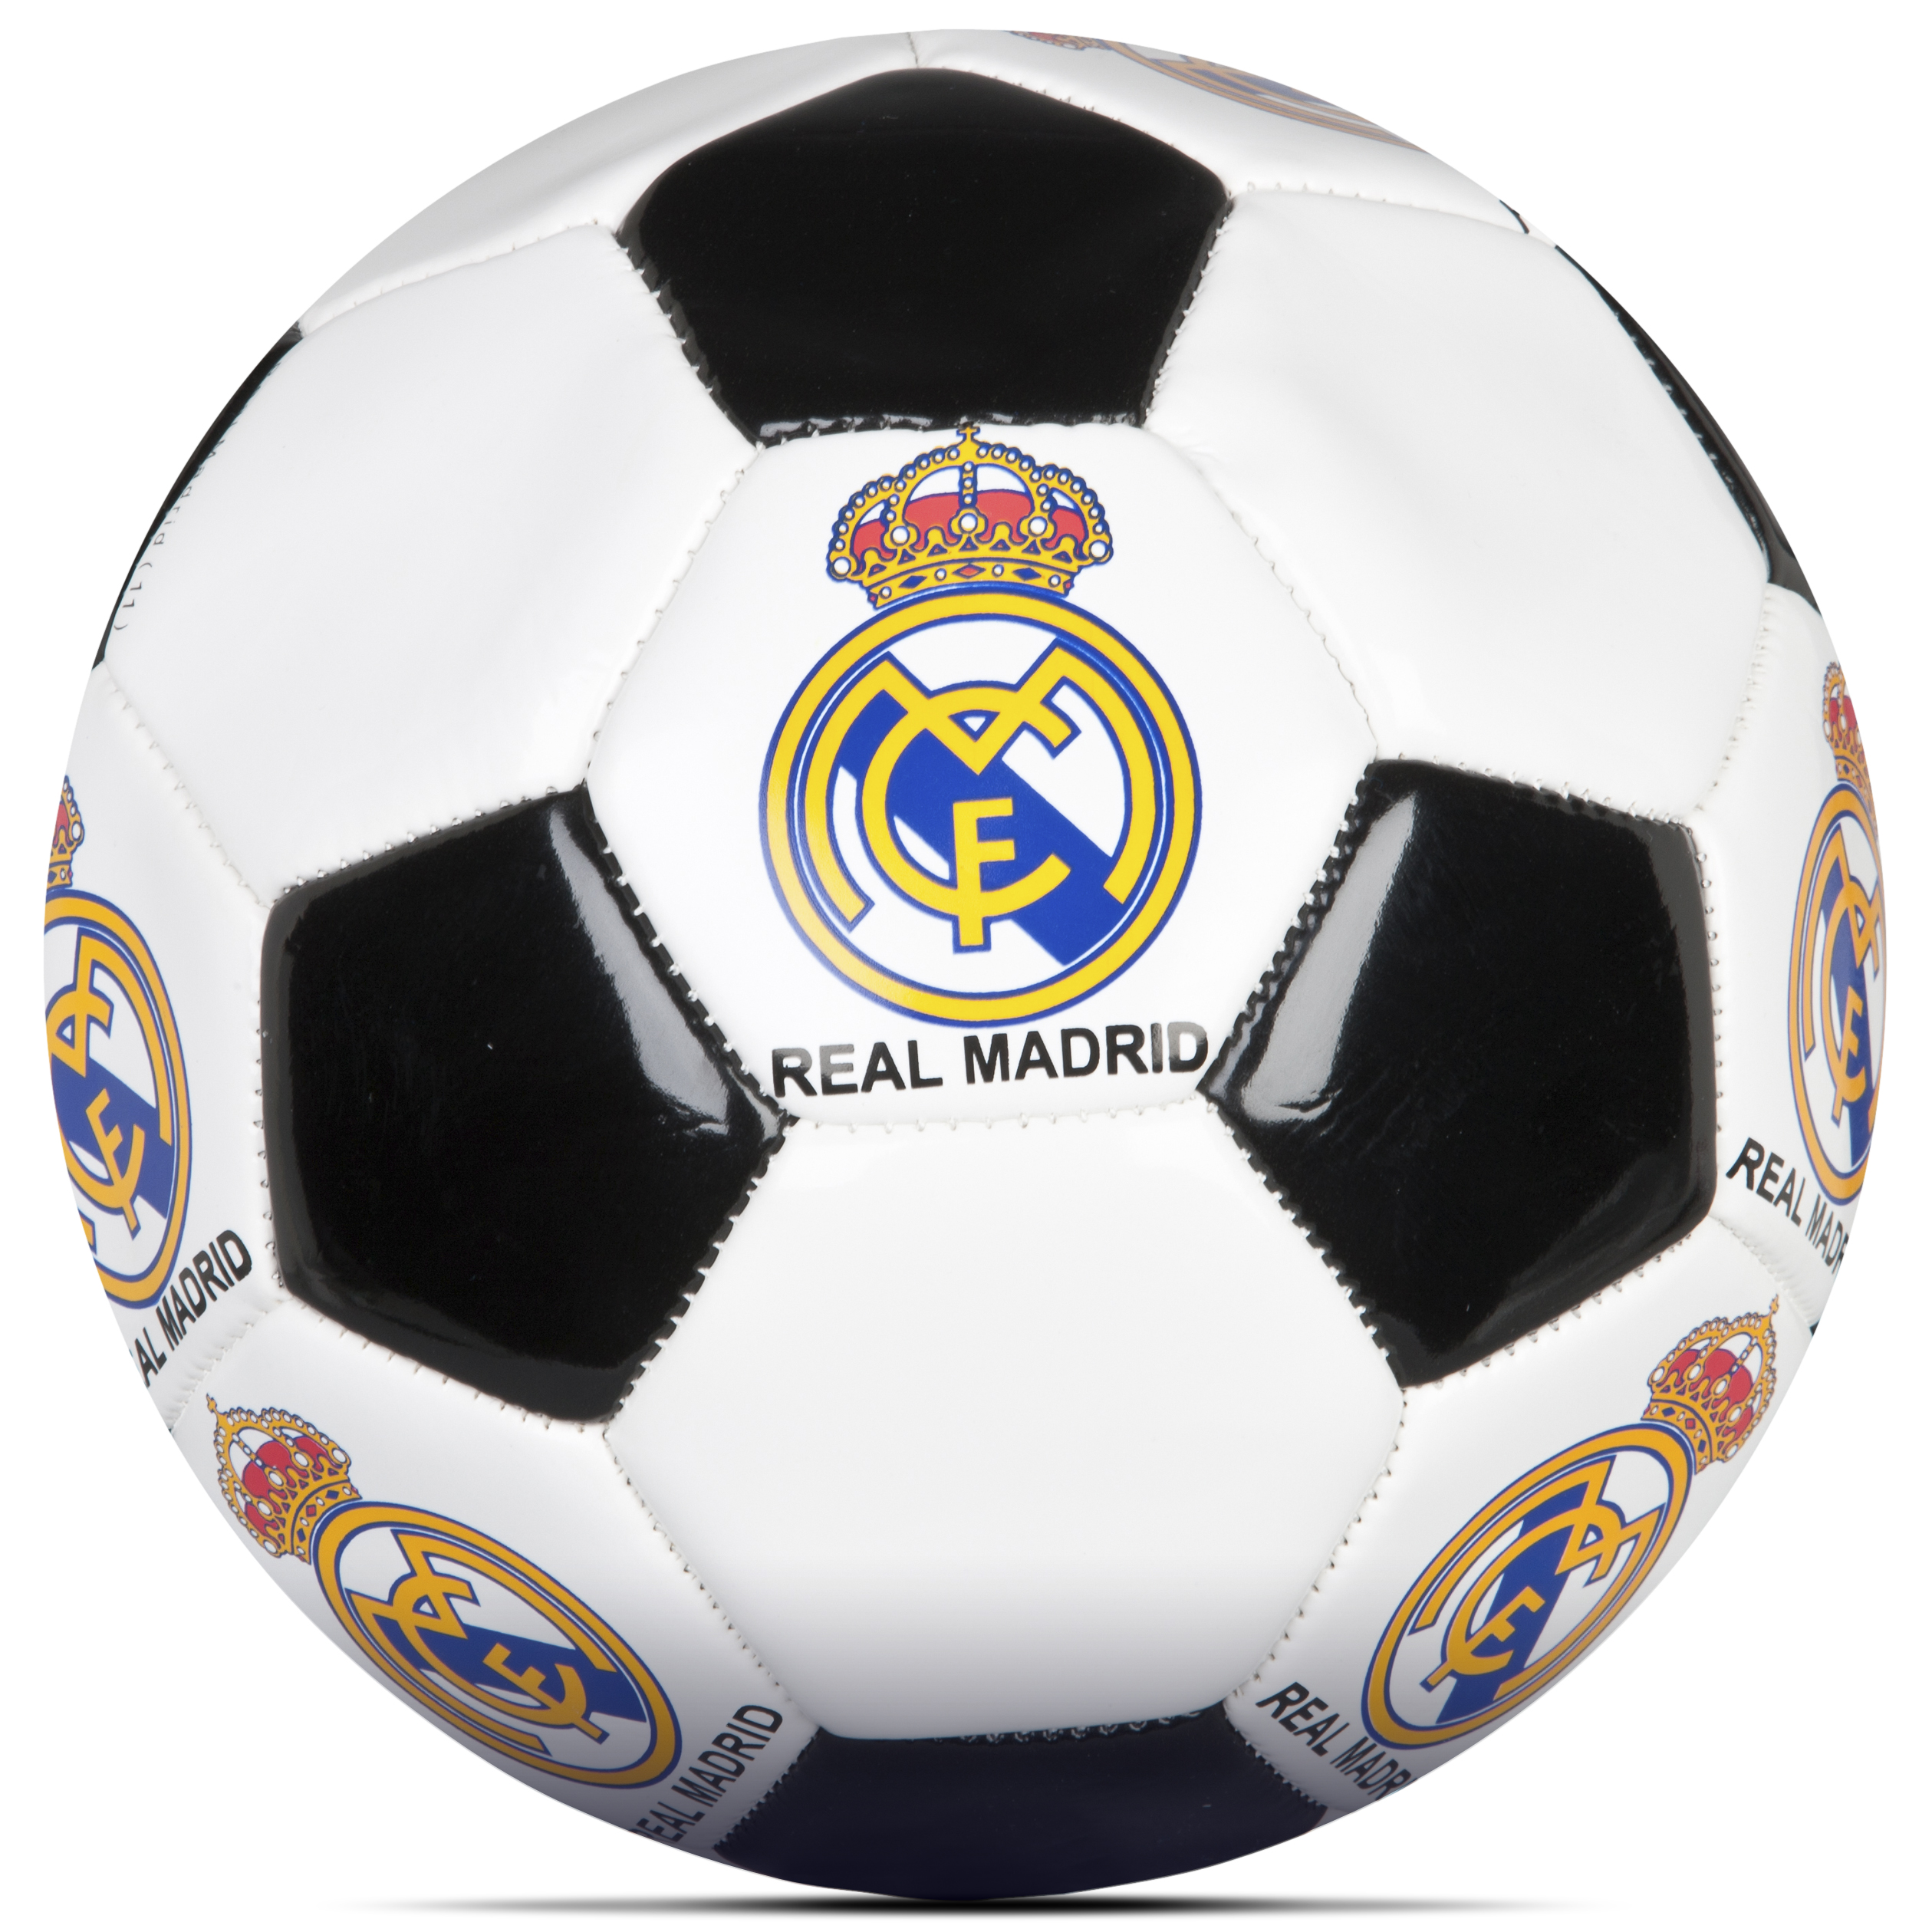 Baln Clasic Real Madrid - Blanco/negro